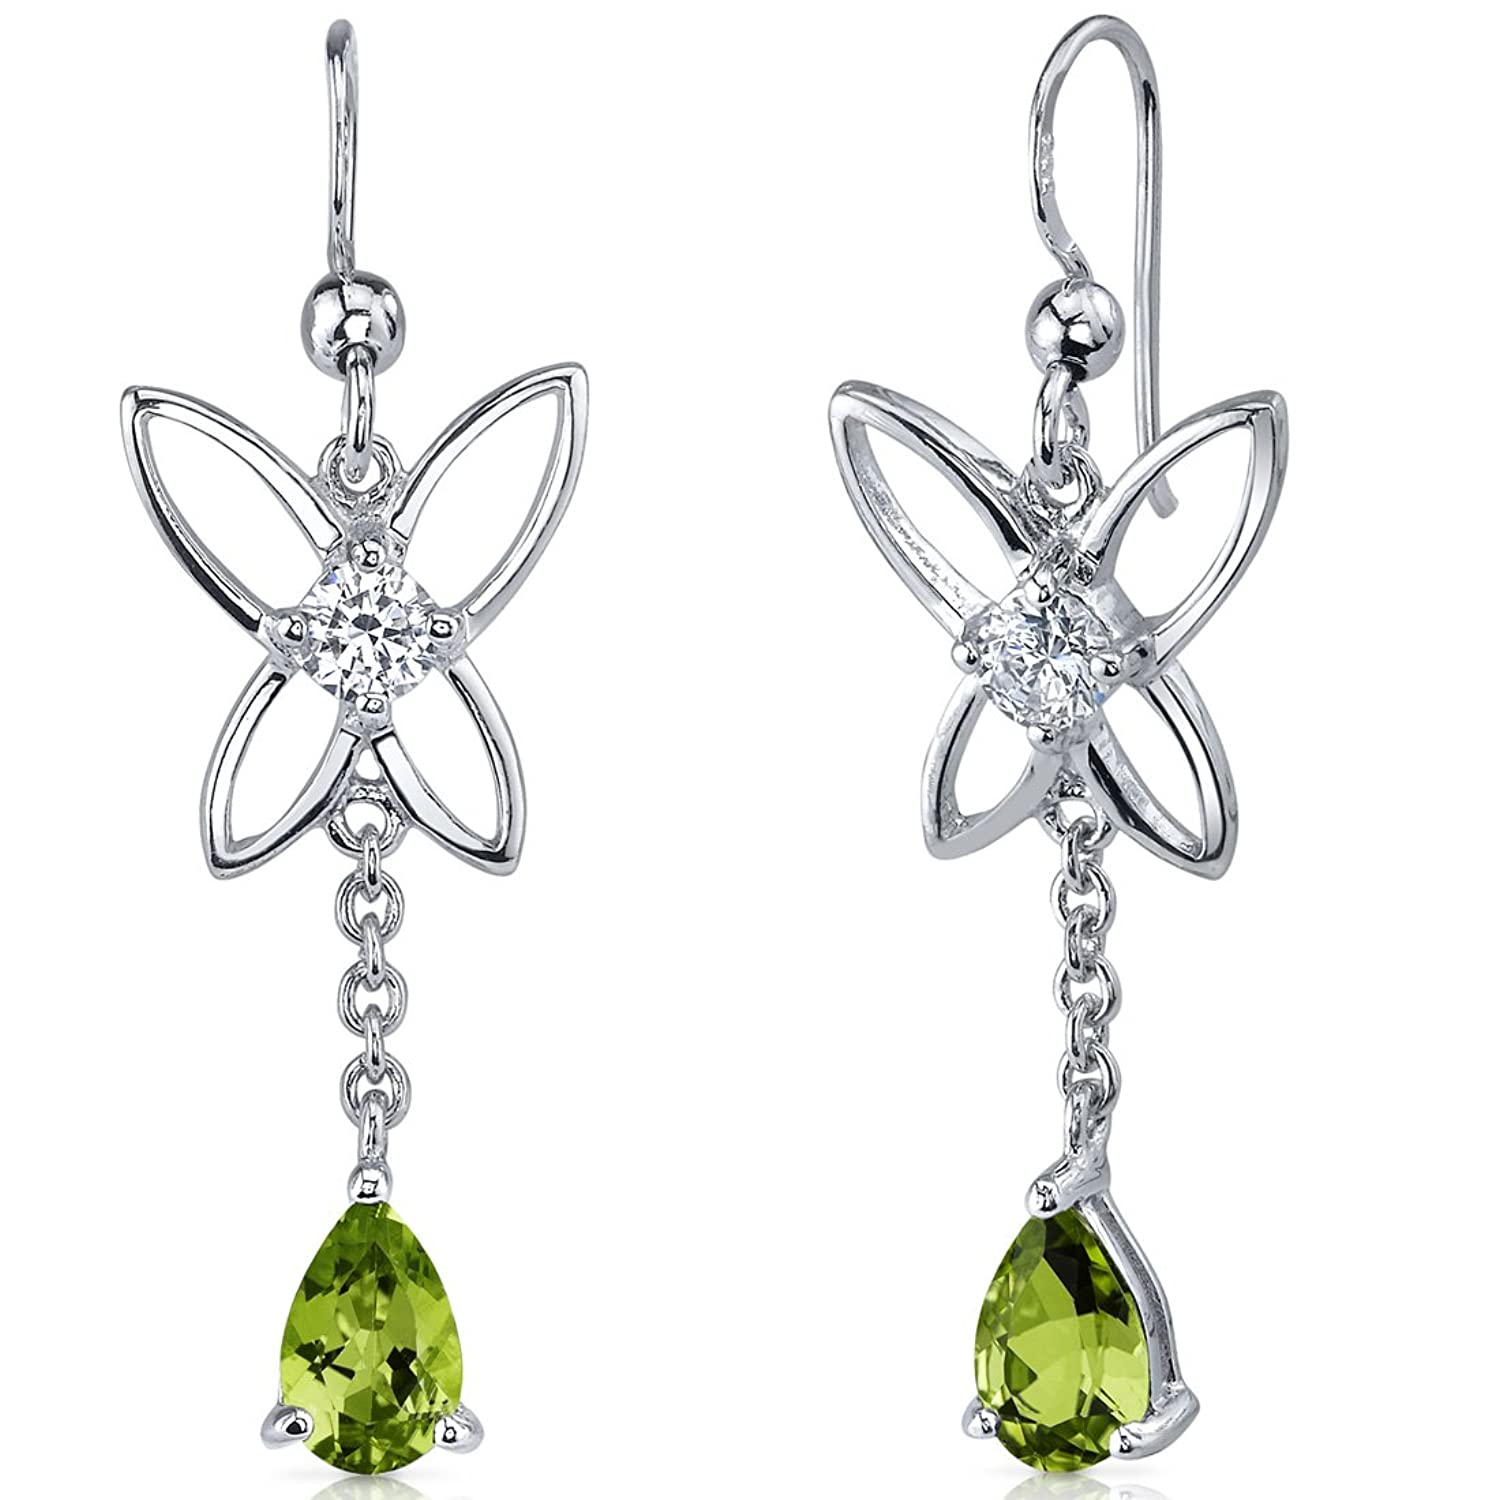 Peridot Dangle Earrings Sterling Silver Rhodium Nickel Finish Butterfly Design 1.50 Carats